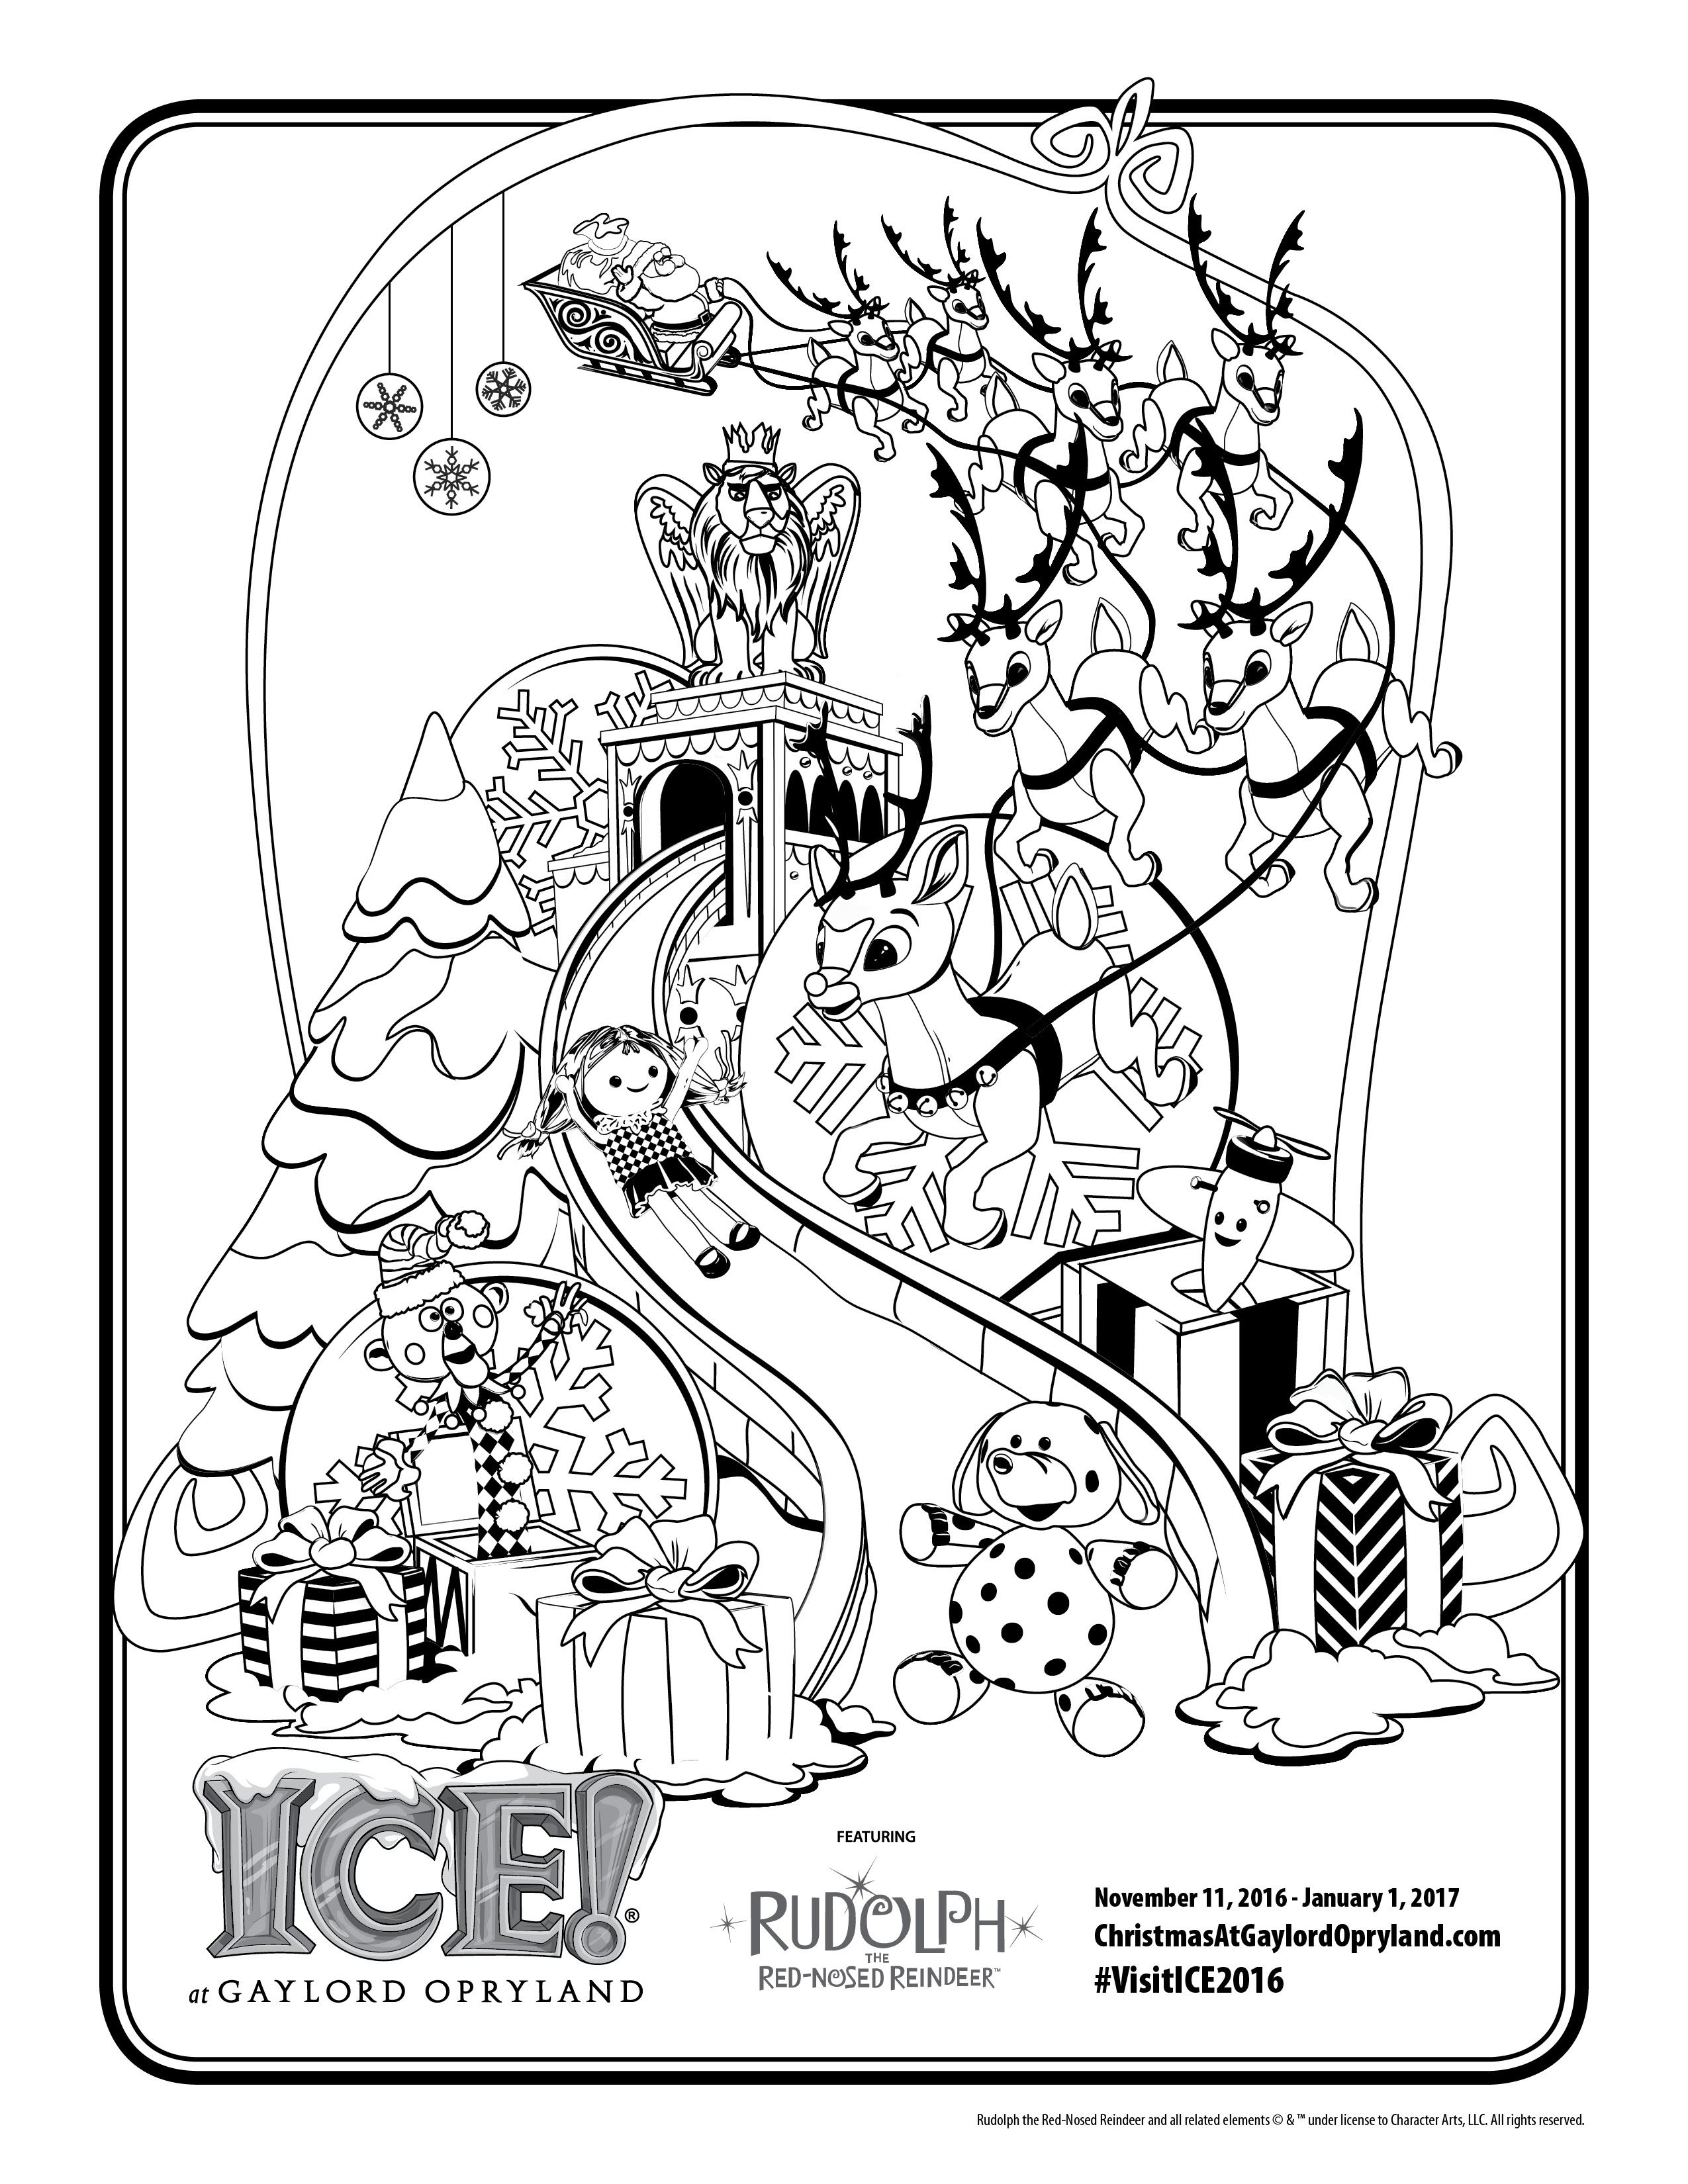 nashville tennessee coloring pages - photo#16